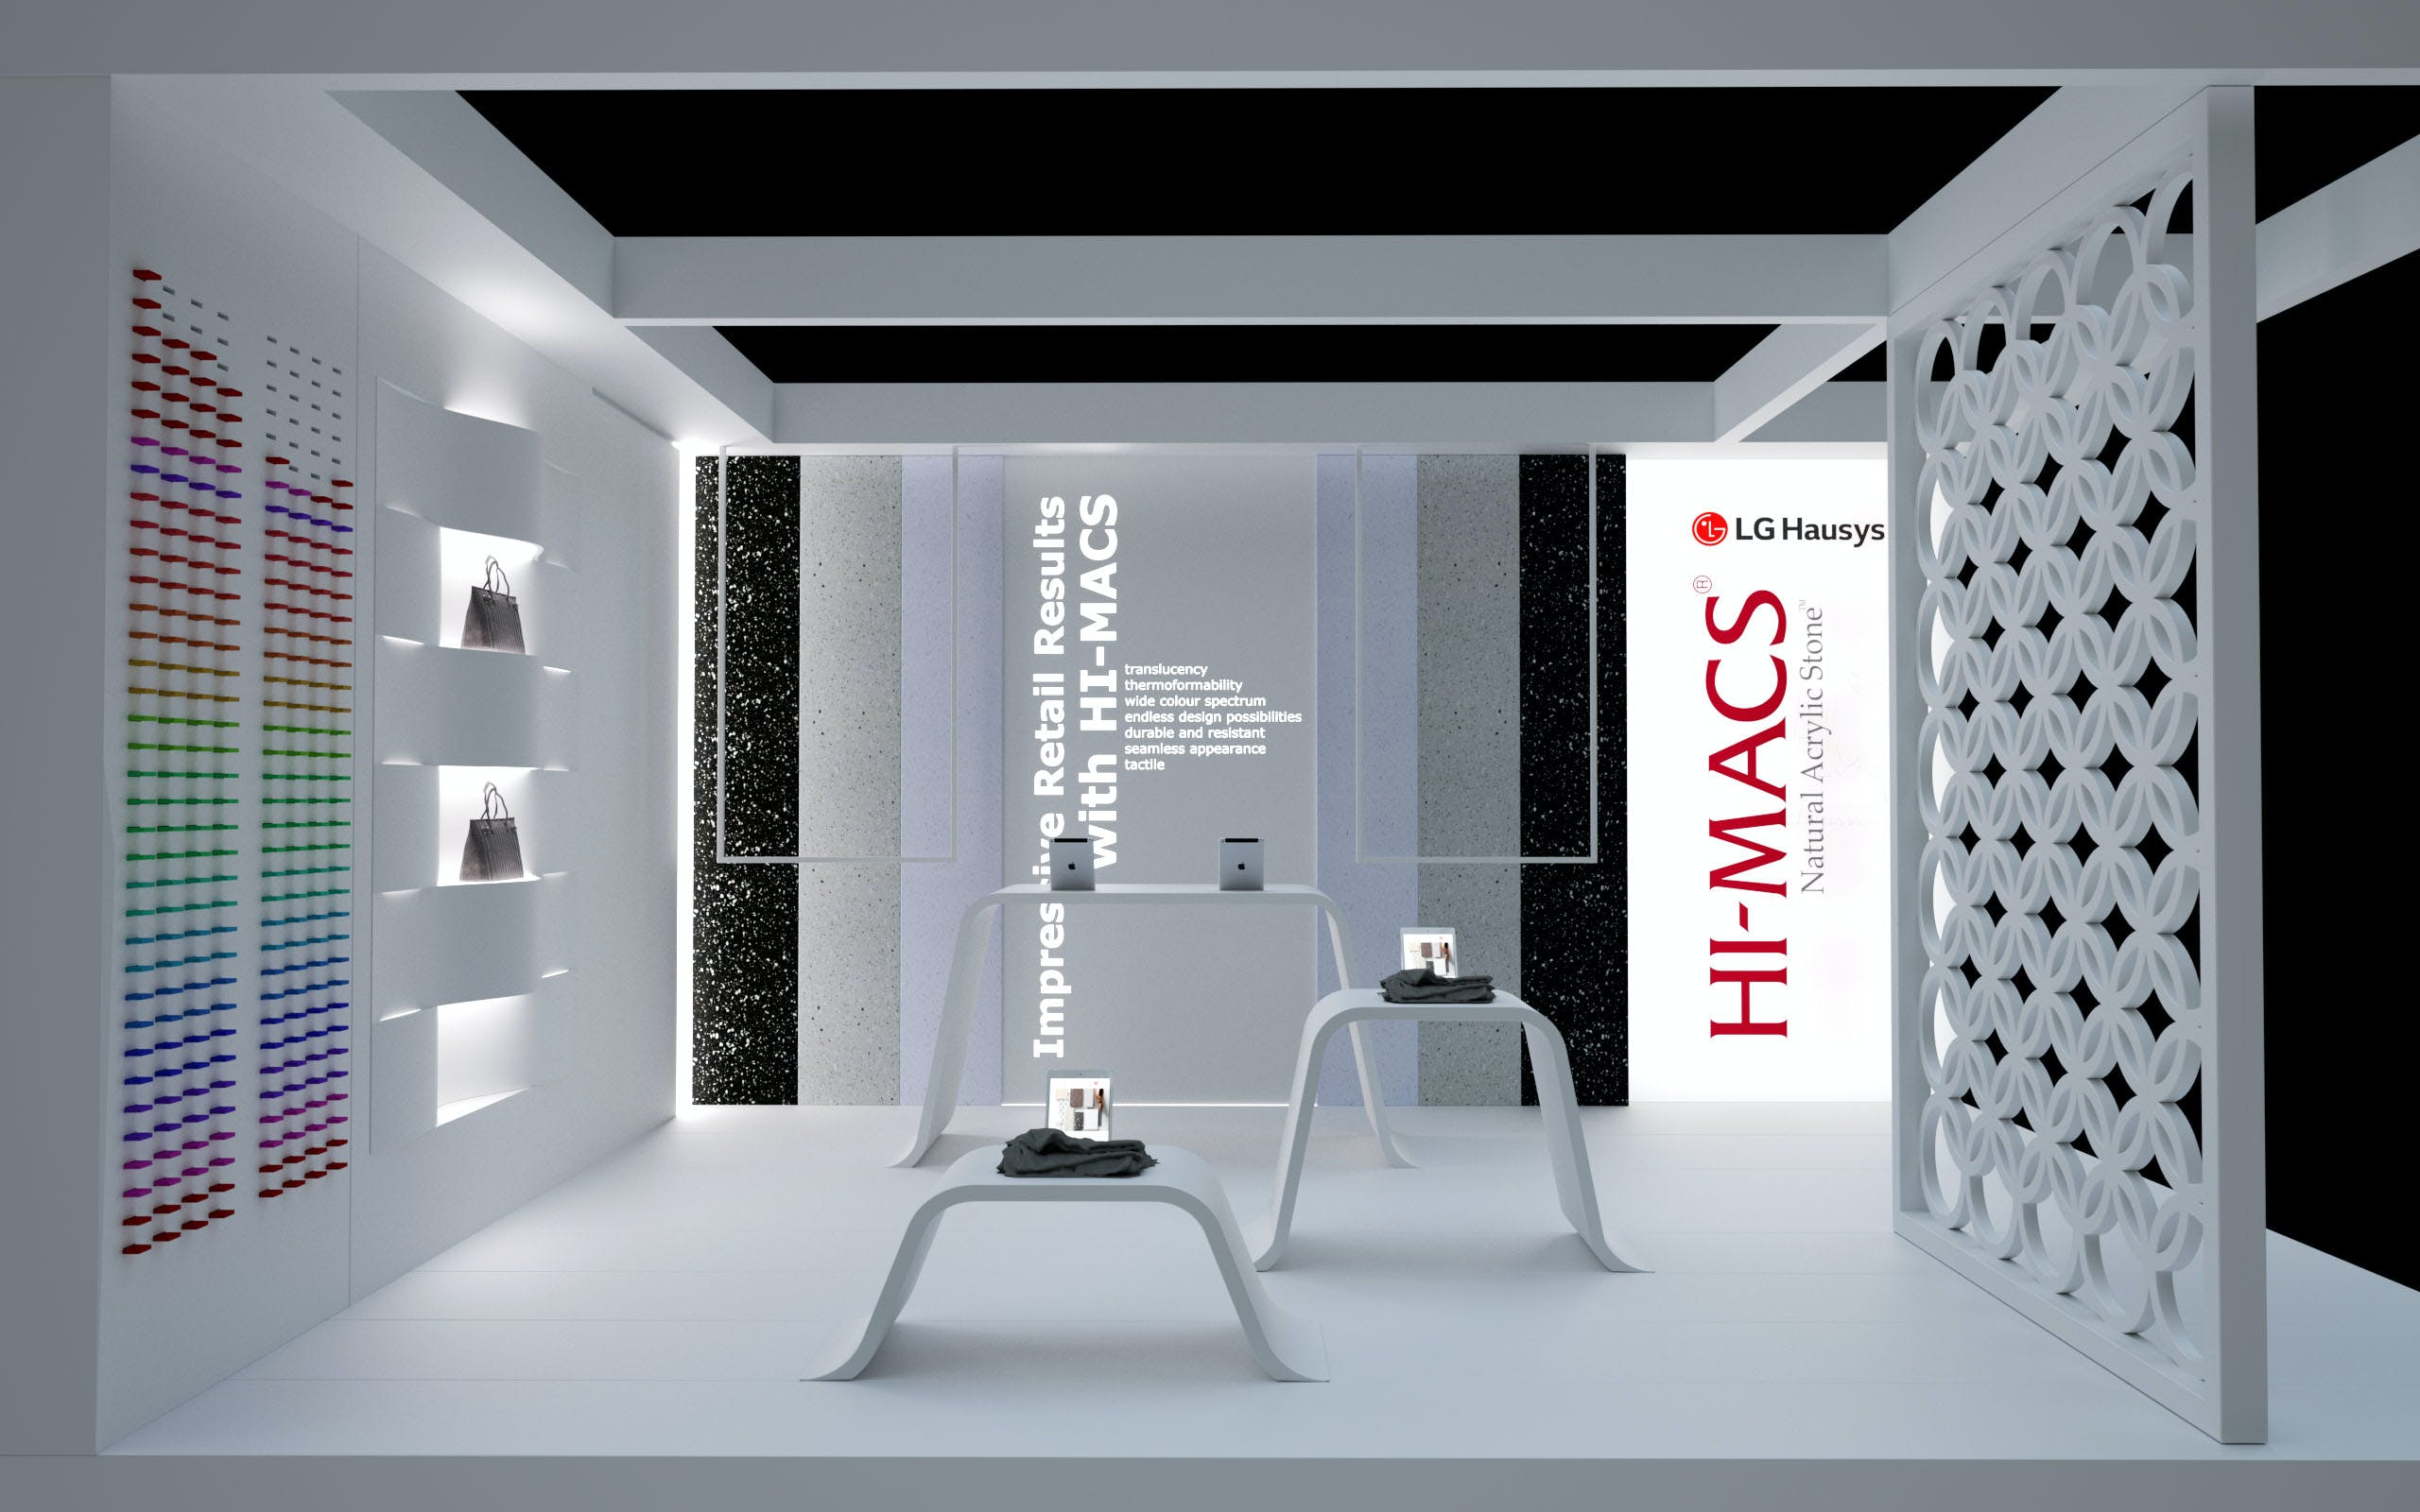 lg hausys presents hi macs limitless design possibilities at retail design expo lg hausys. Black Bedroom Furniture Sets. Home Design Ideas